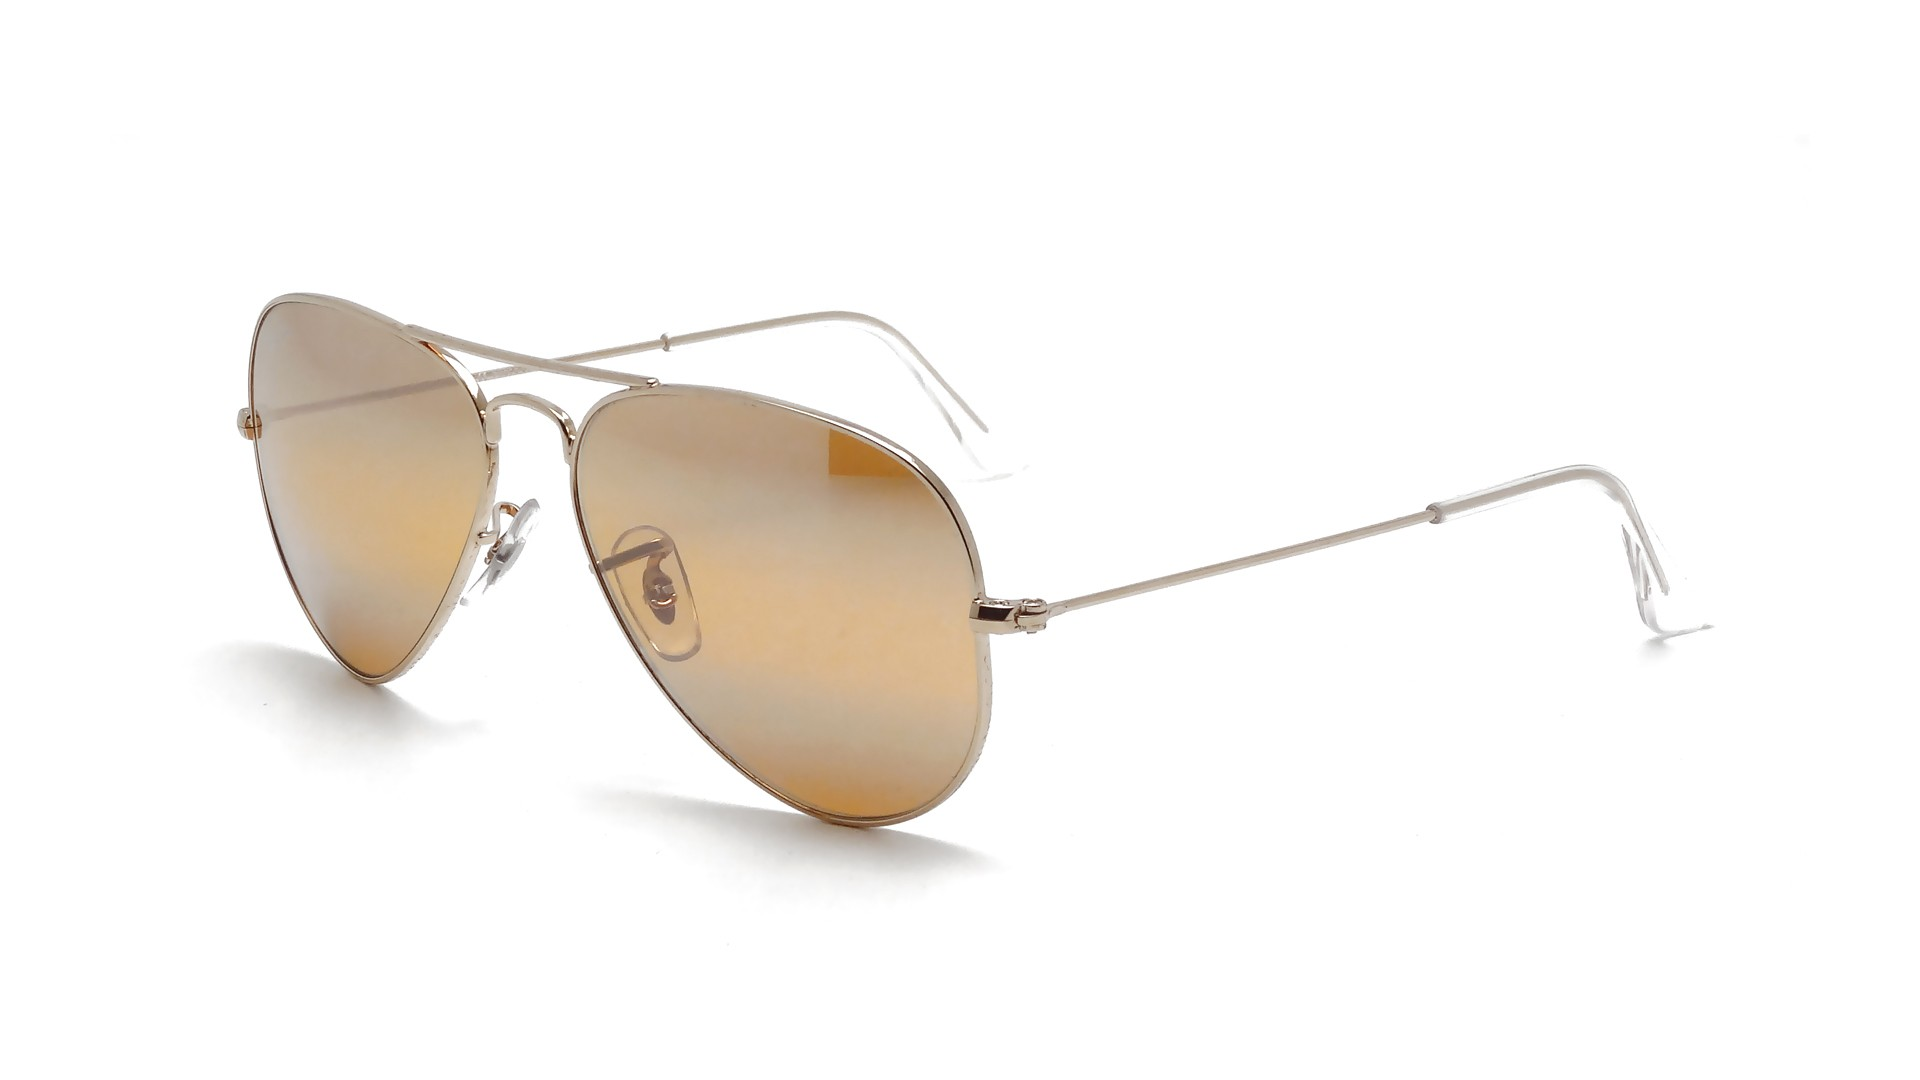 Ray Ban Aviator Large Metal Gold Rb3025 001 3k 62 14